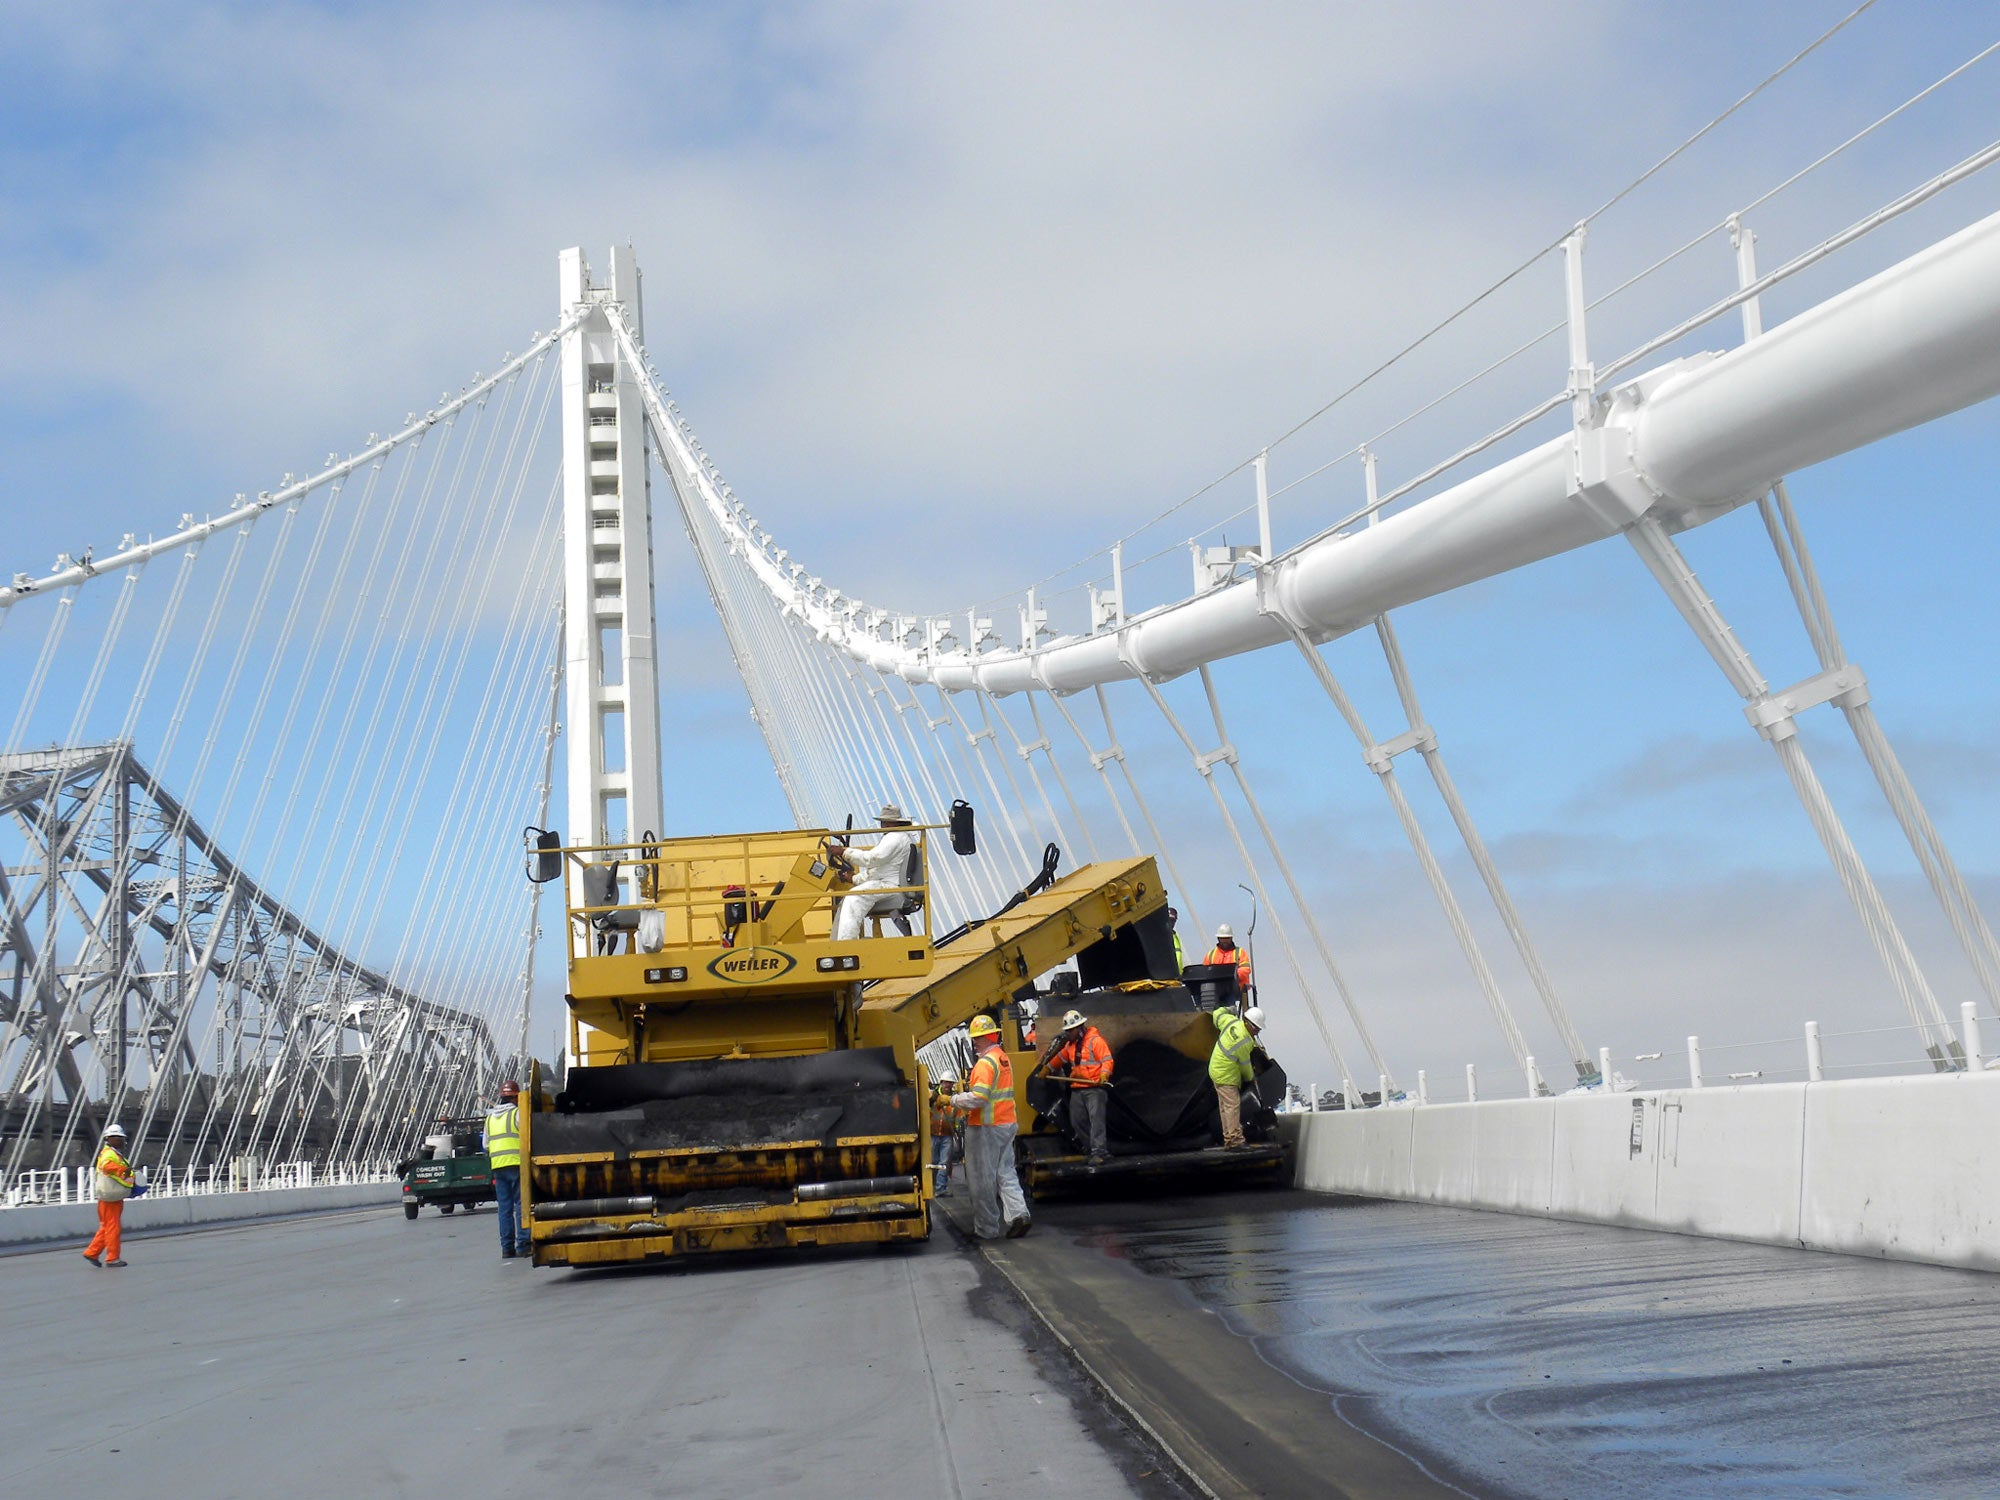 ddf4d47ca3e87 Paving the Self-Anchored Suspension Span